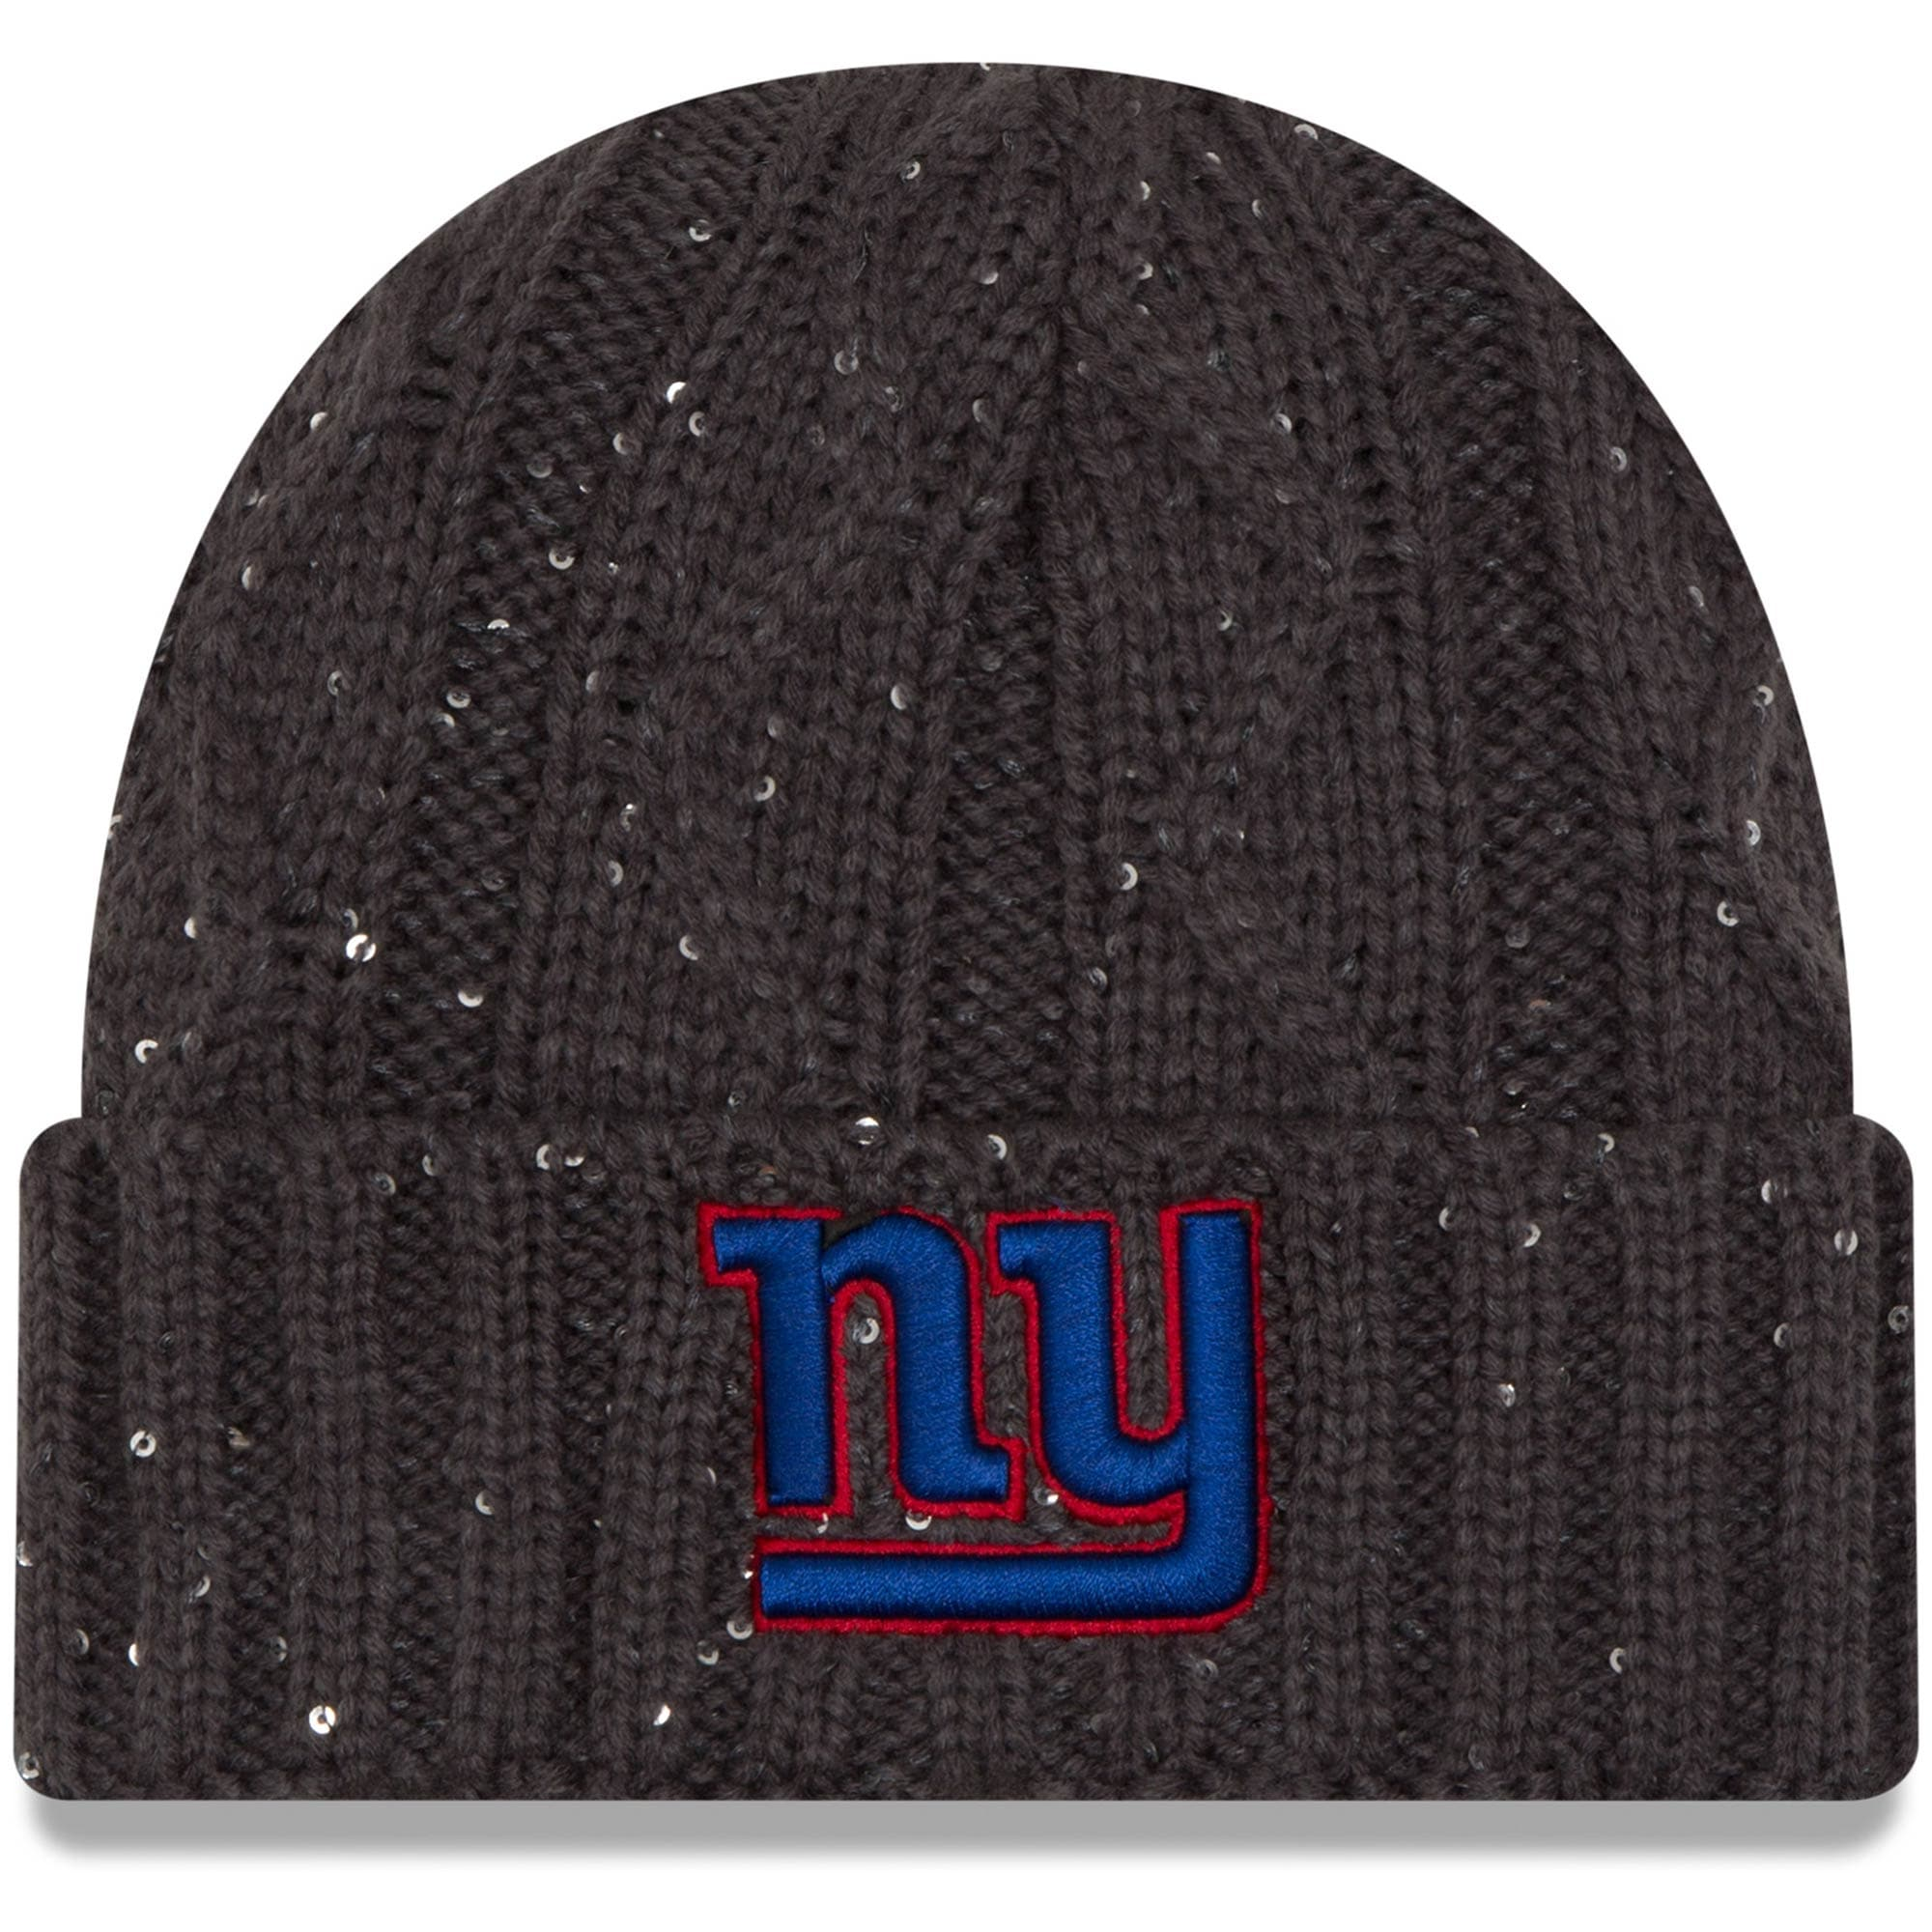 New York Giants New Era Women's Cable Frosted Cuffed Knit Hat - Graphite